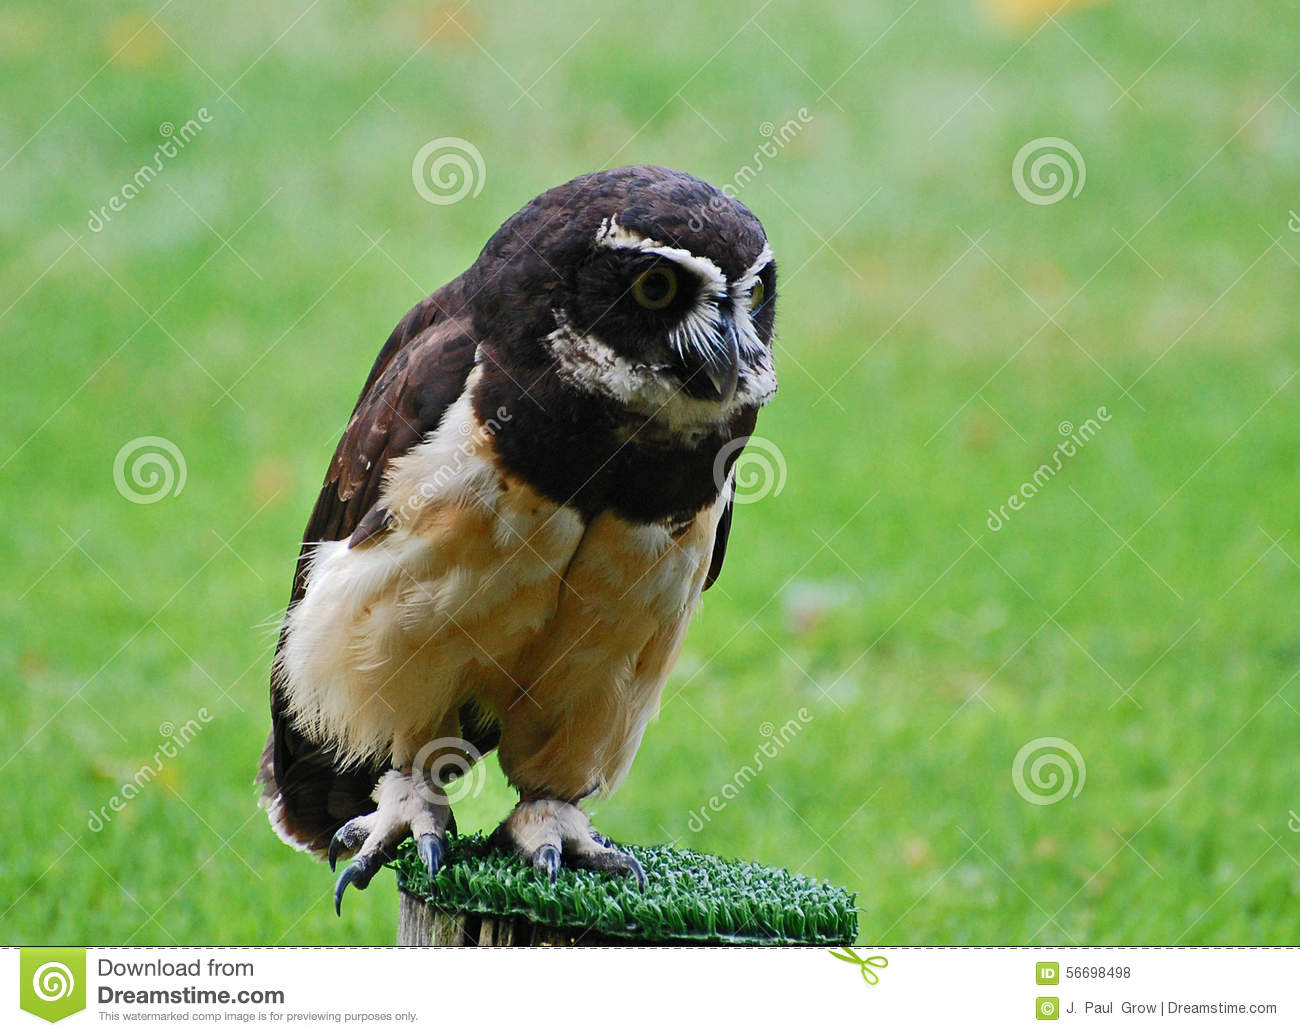 Spectacled Owl clipart #6, Download drawings